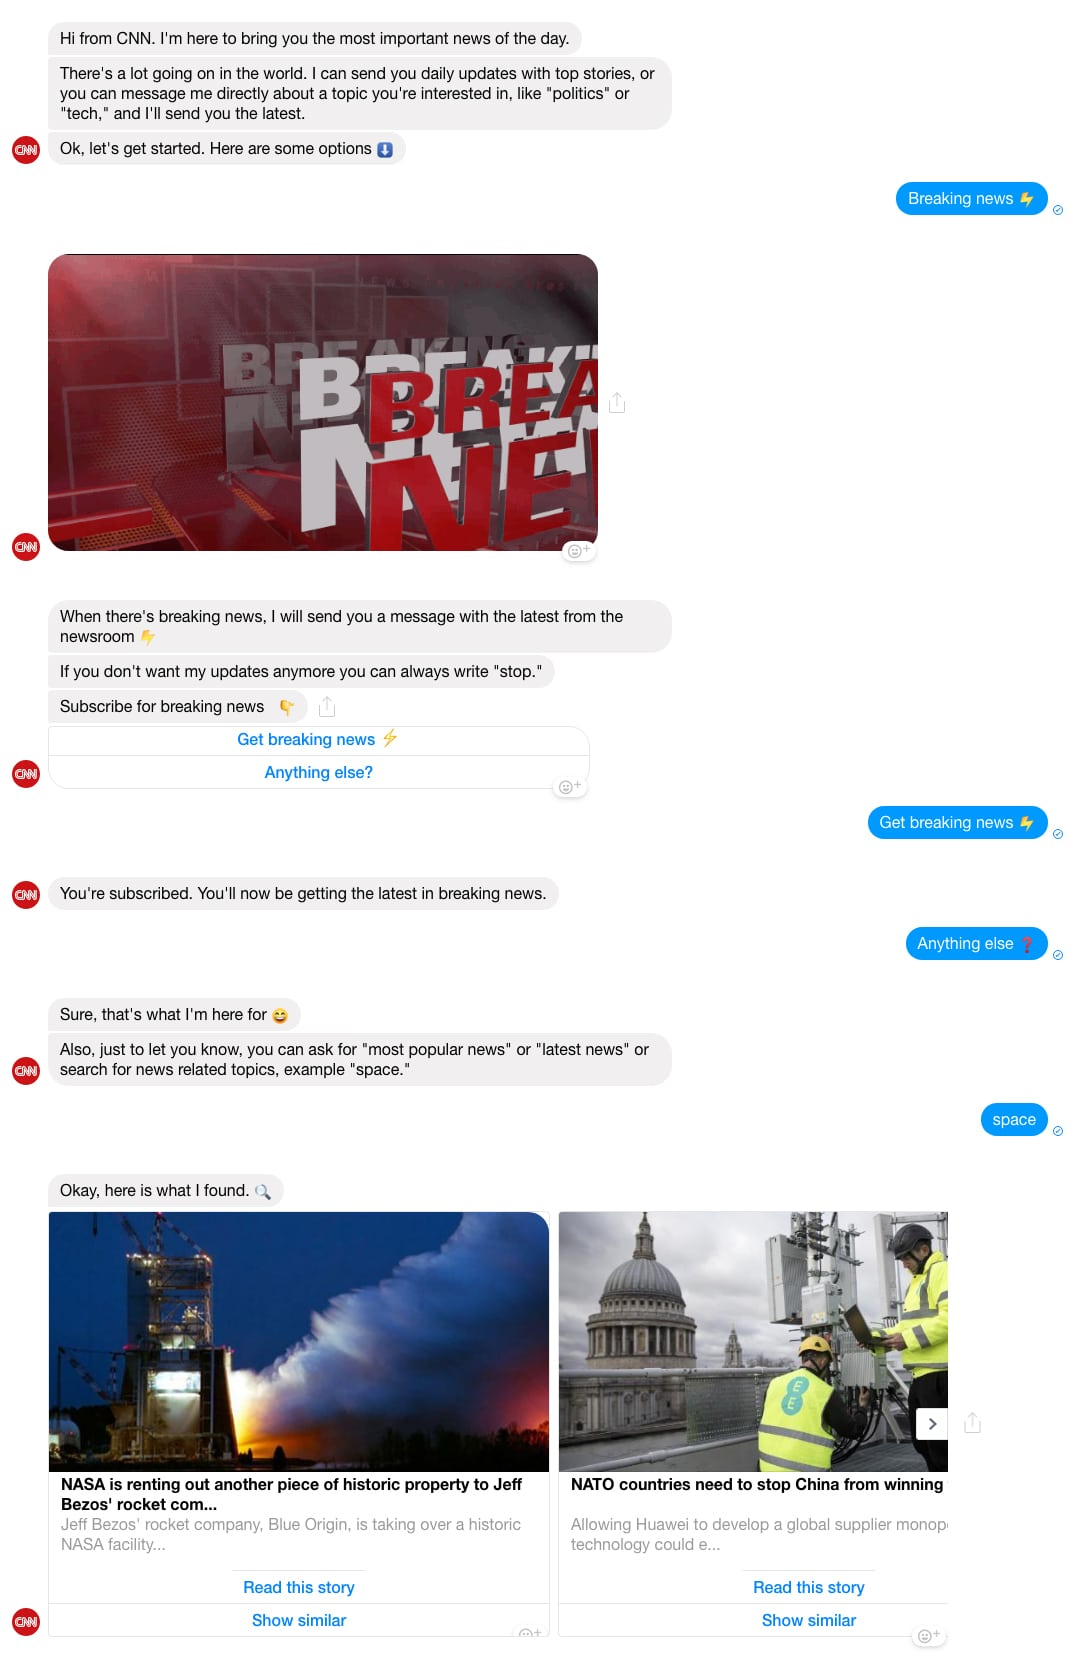 Facebook Messenger Bot example: CNN